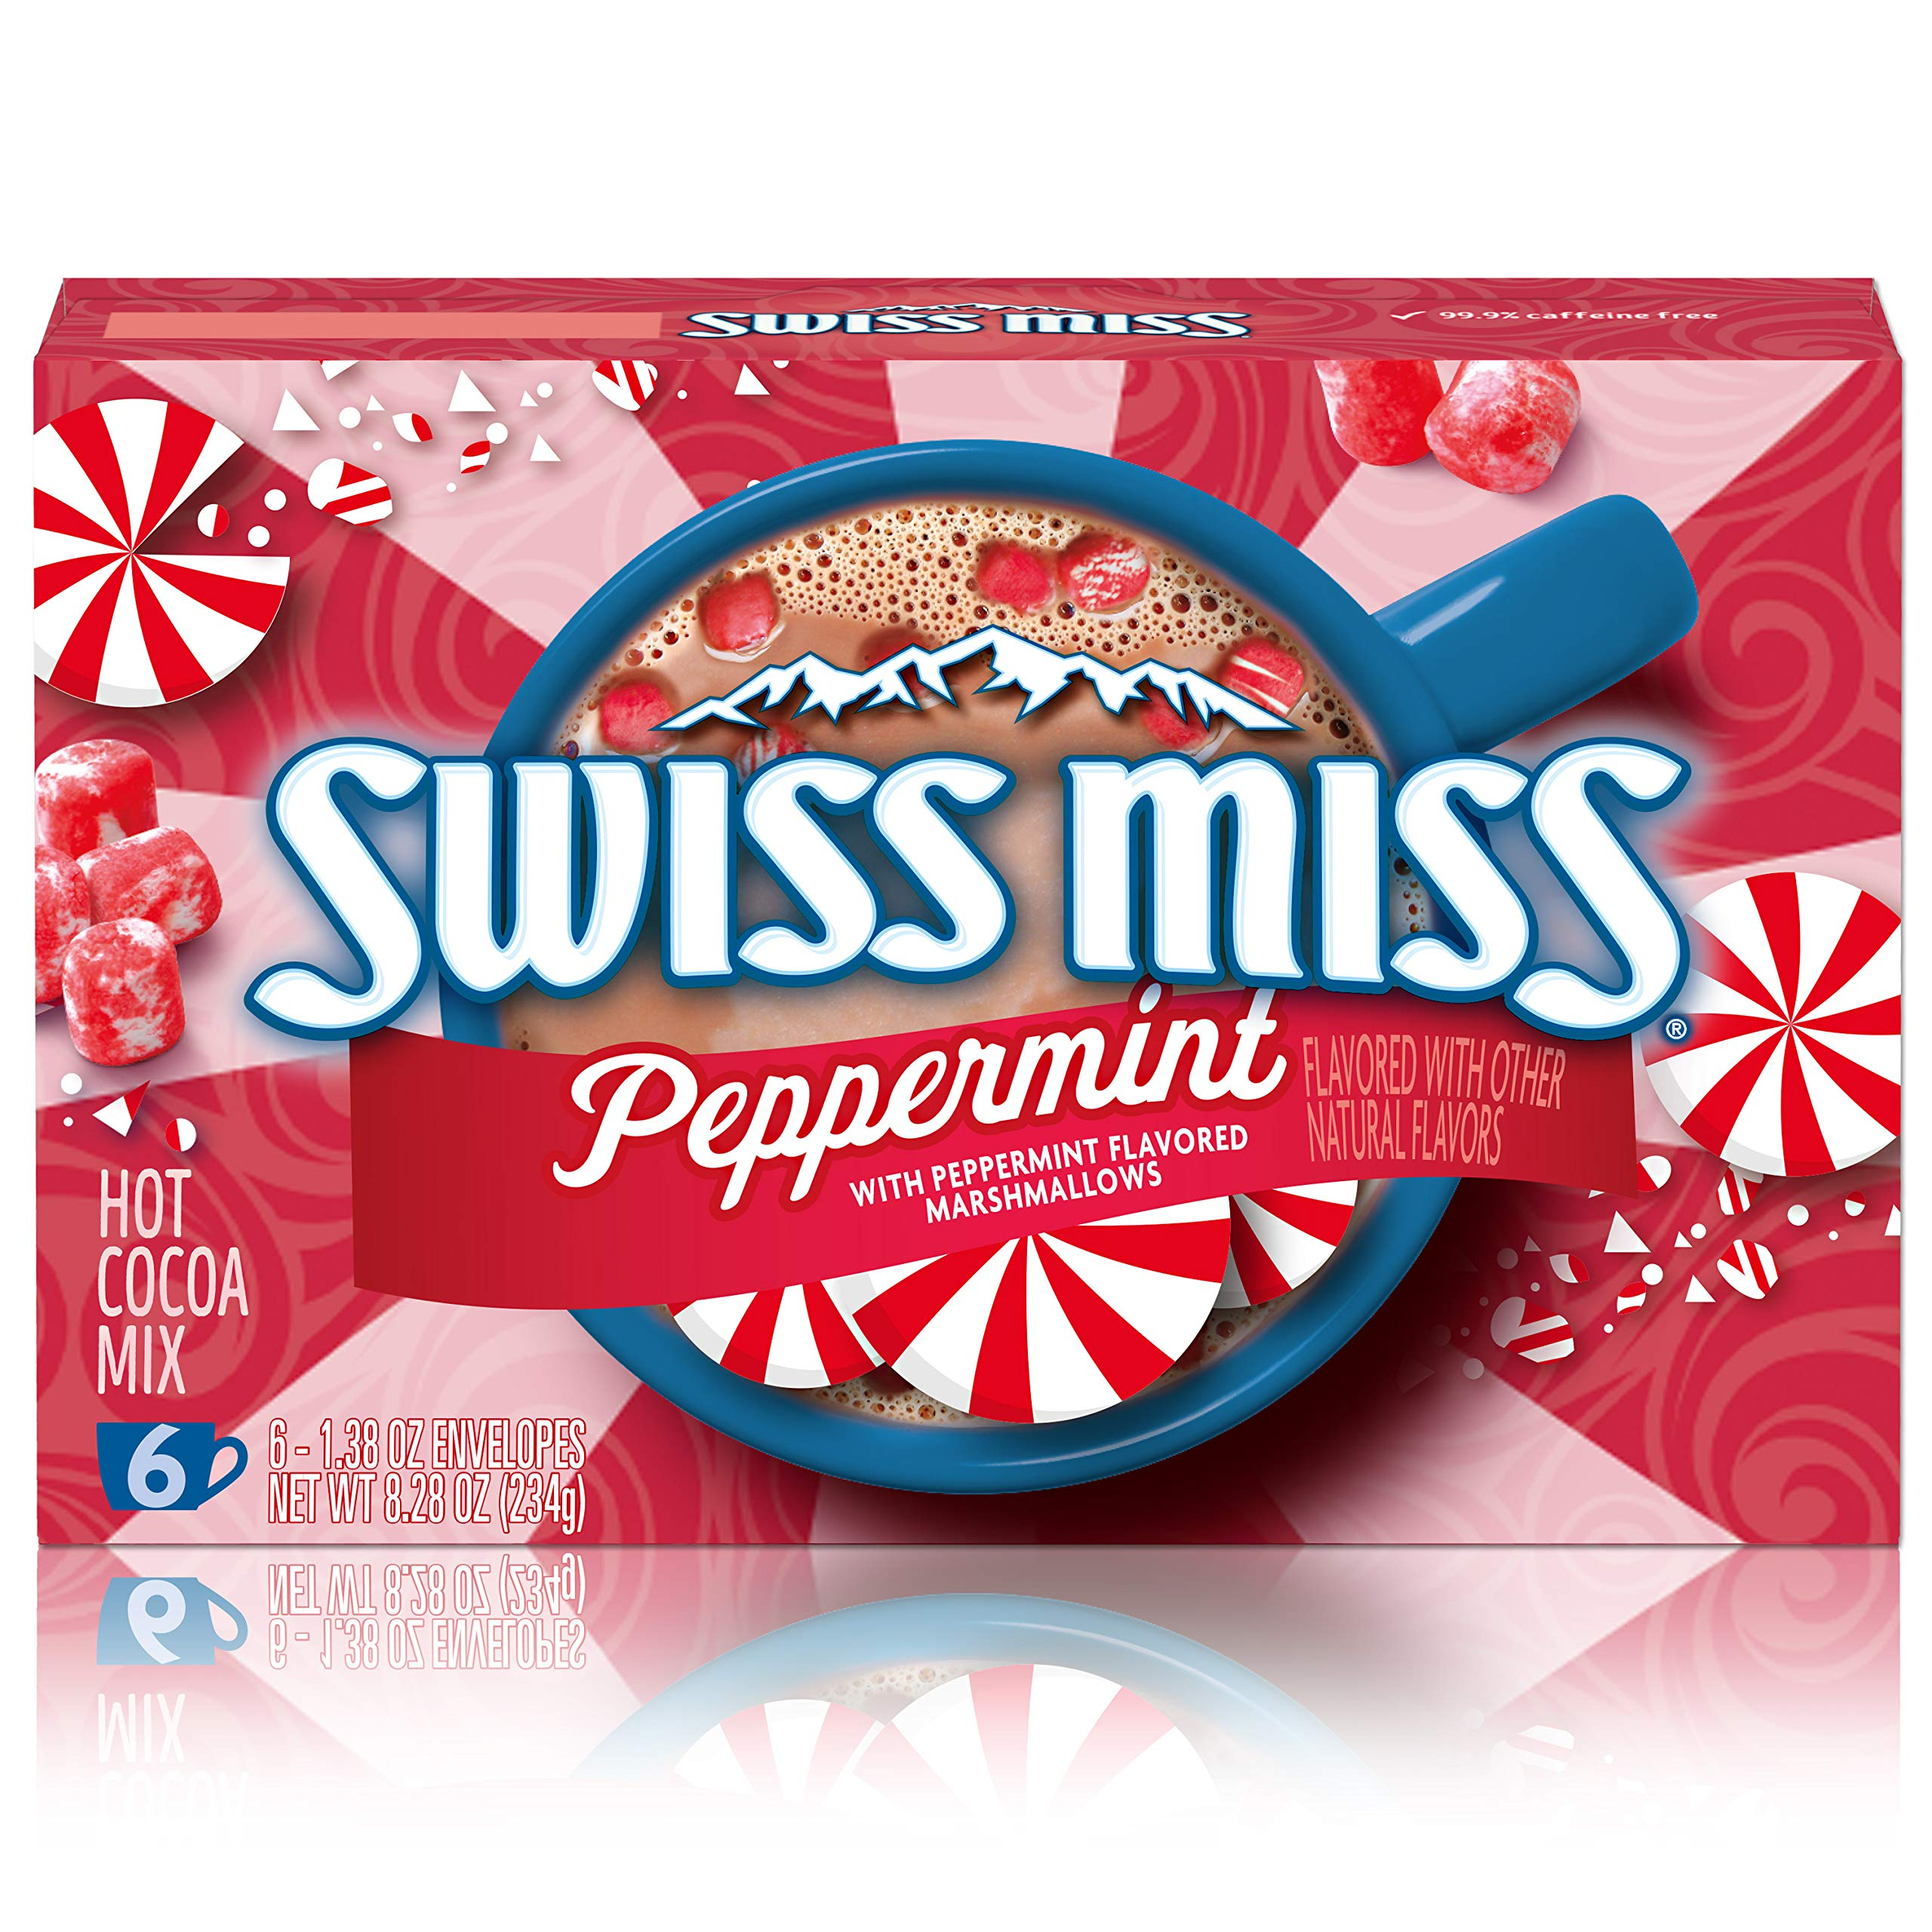 Swiss Miss Peppermint Flavor Hot Cocoa Mix, 1.38 oz. 6-Count